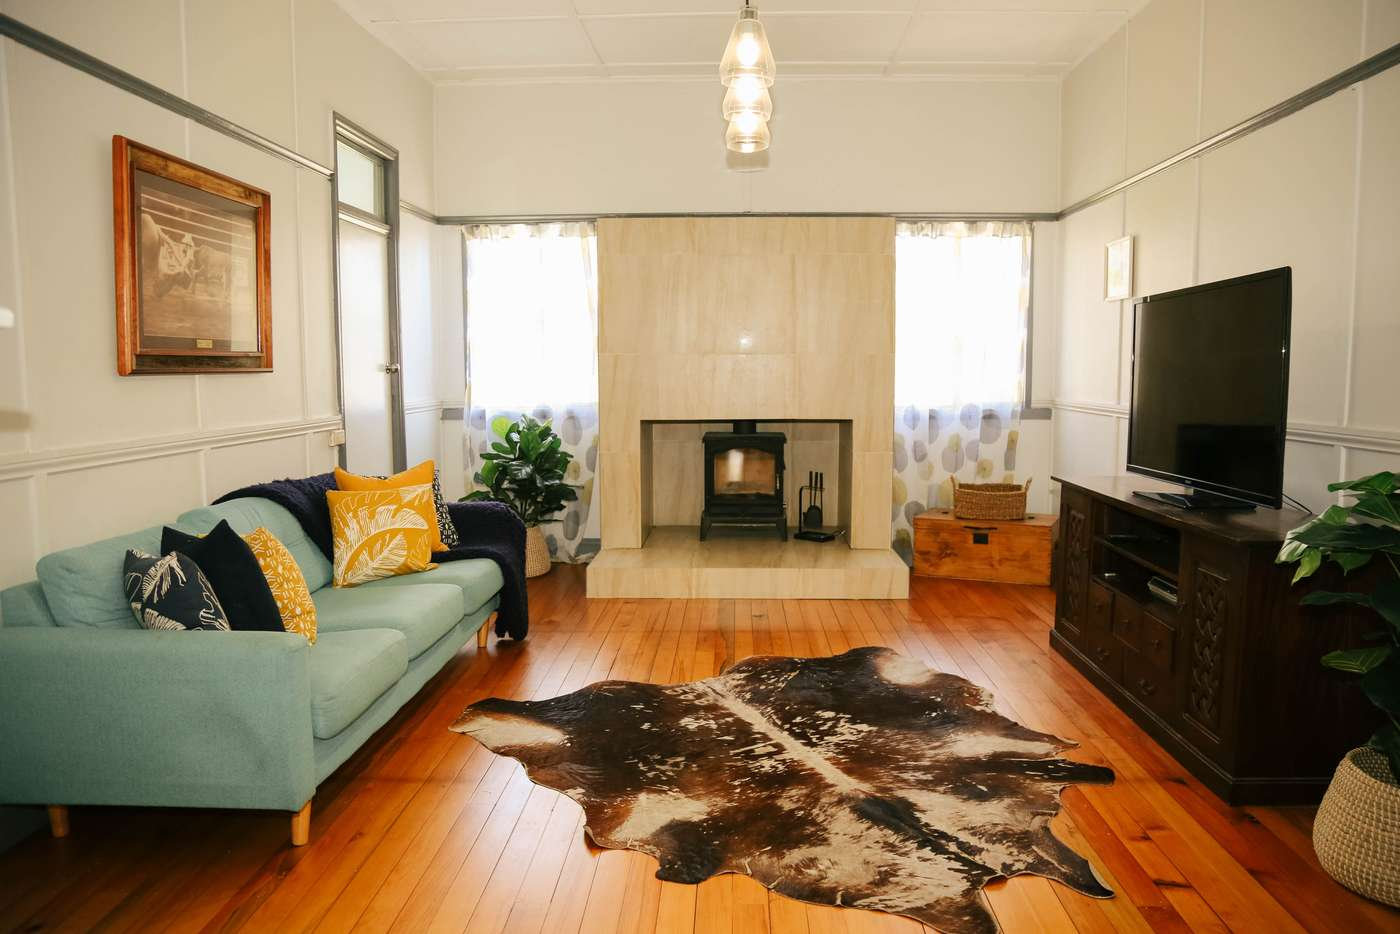 Fifth view of Homely house listing, 45 South Street, Crows Nest QLD 4355